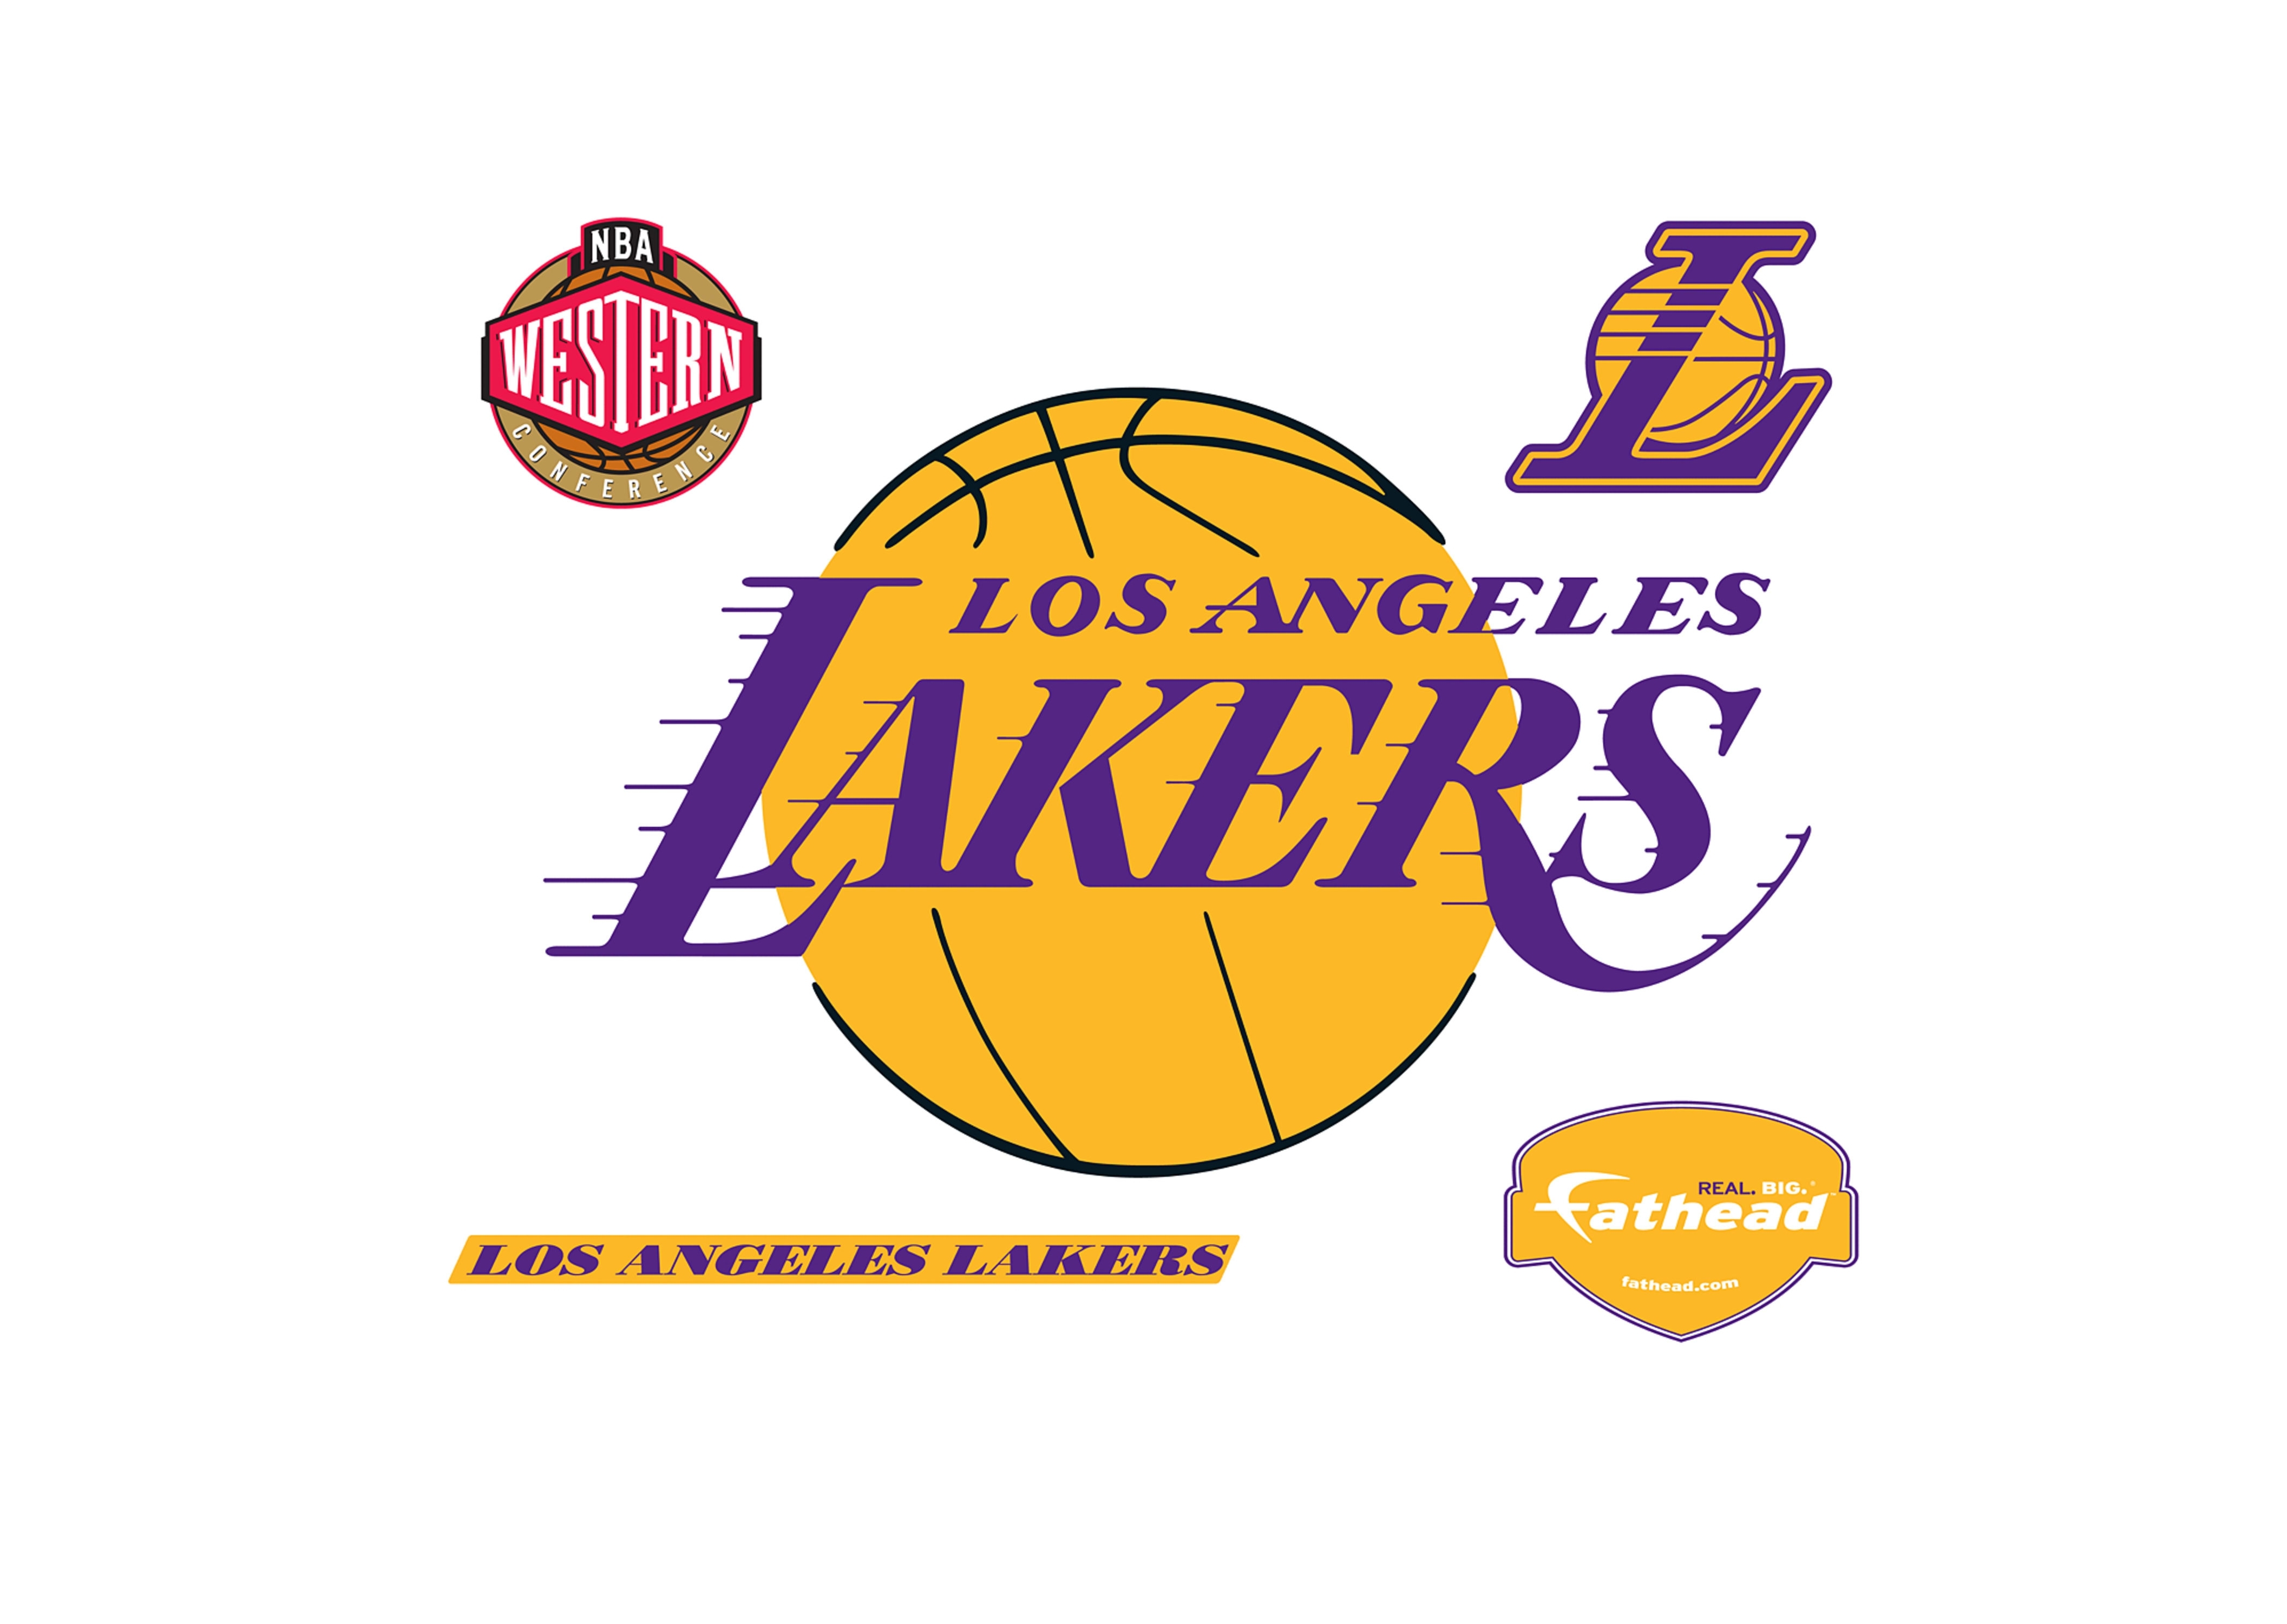 los angeles lakers logo wall decal | shop fathead® for los angeles